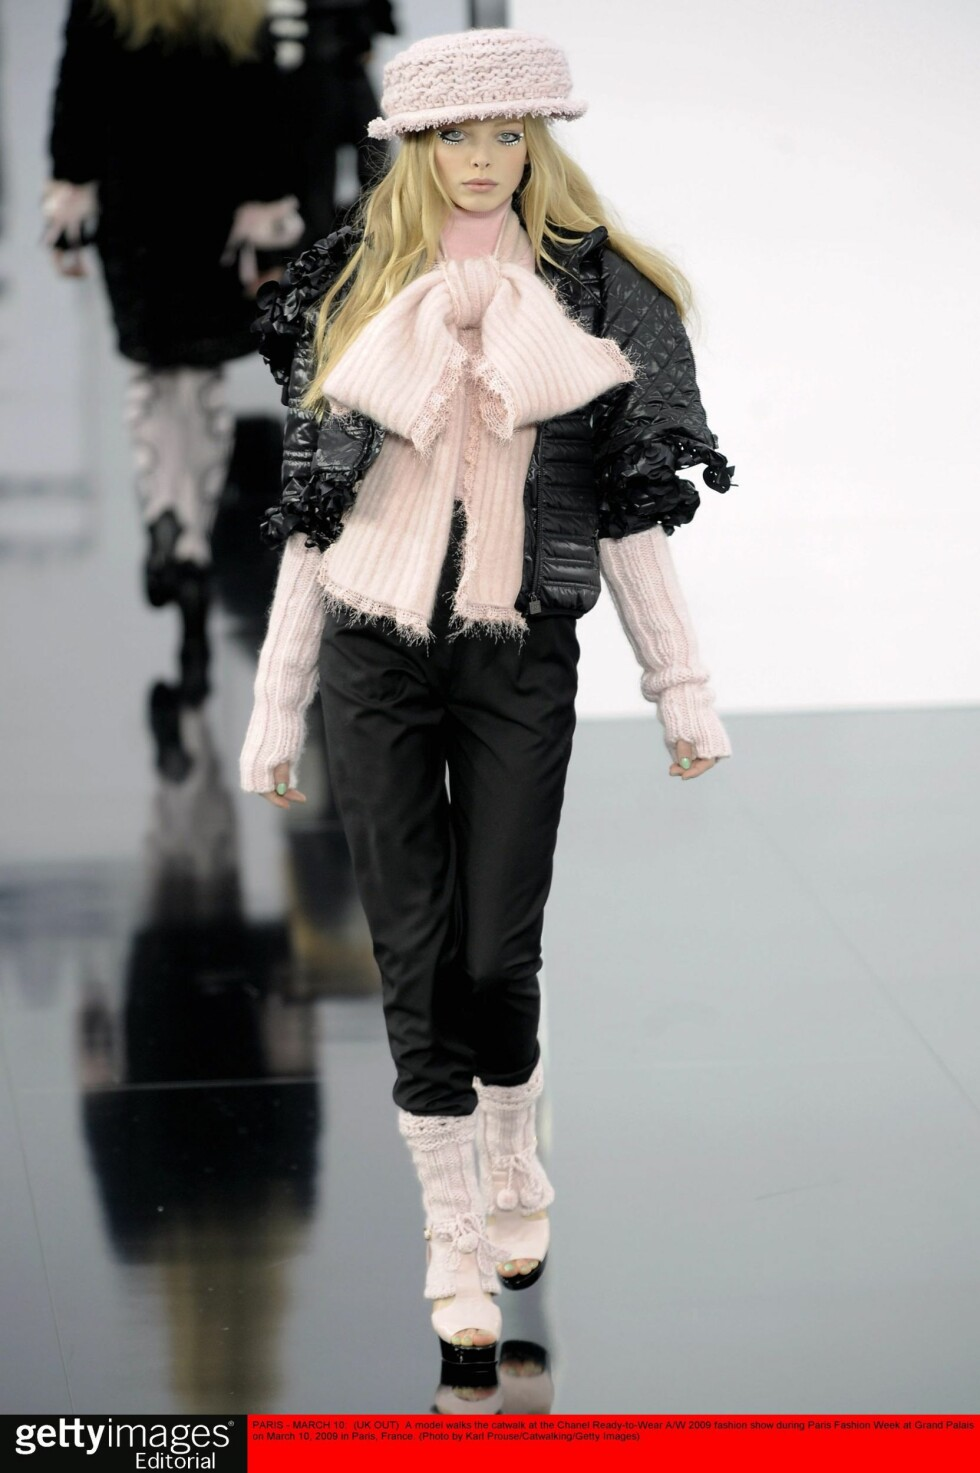 PARIS - MARCH 10:  (UK OUT)  A model walks the catwalk at the Chanel Ready-to-Wear A/W 2009 fashion show during Paris Fashion Week at Grand Palais on March 10, 2009 in Paris, France. (Photo by Karl Prouse/Catwalking/Getty Images) Foto: All Over Press